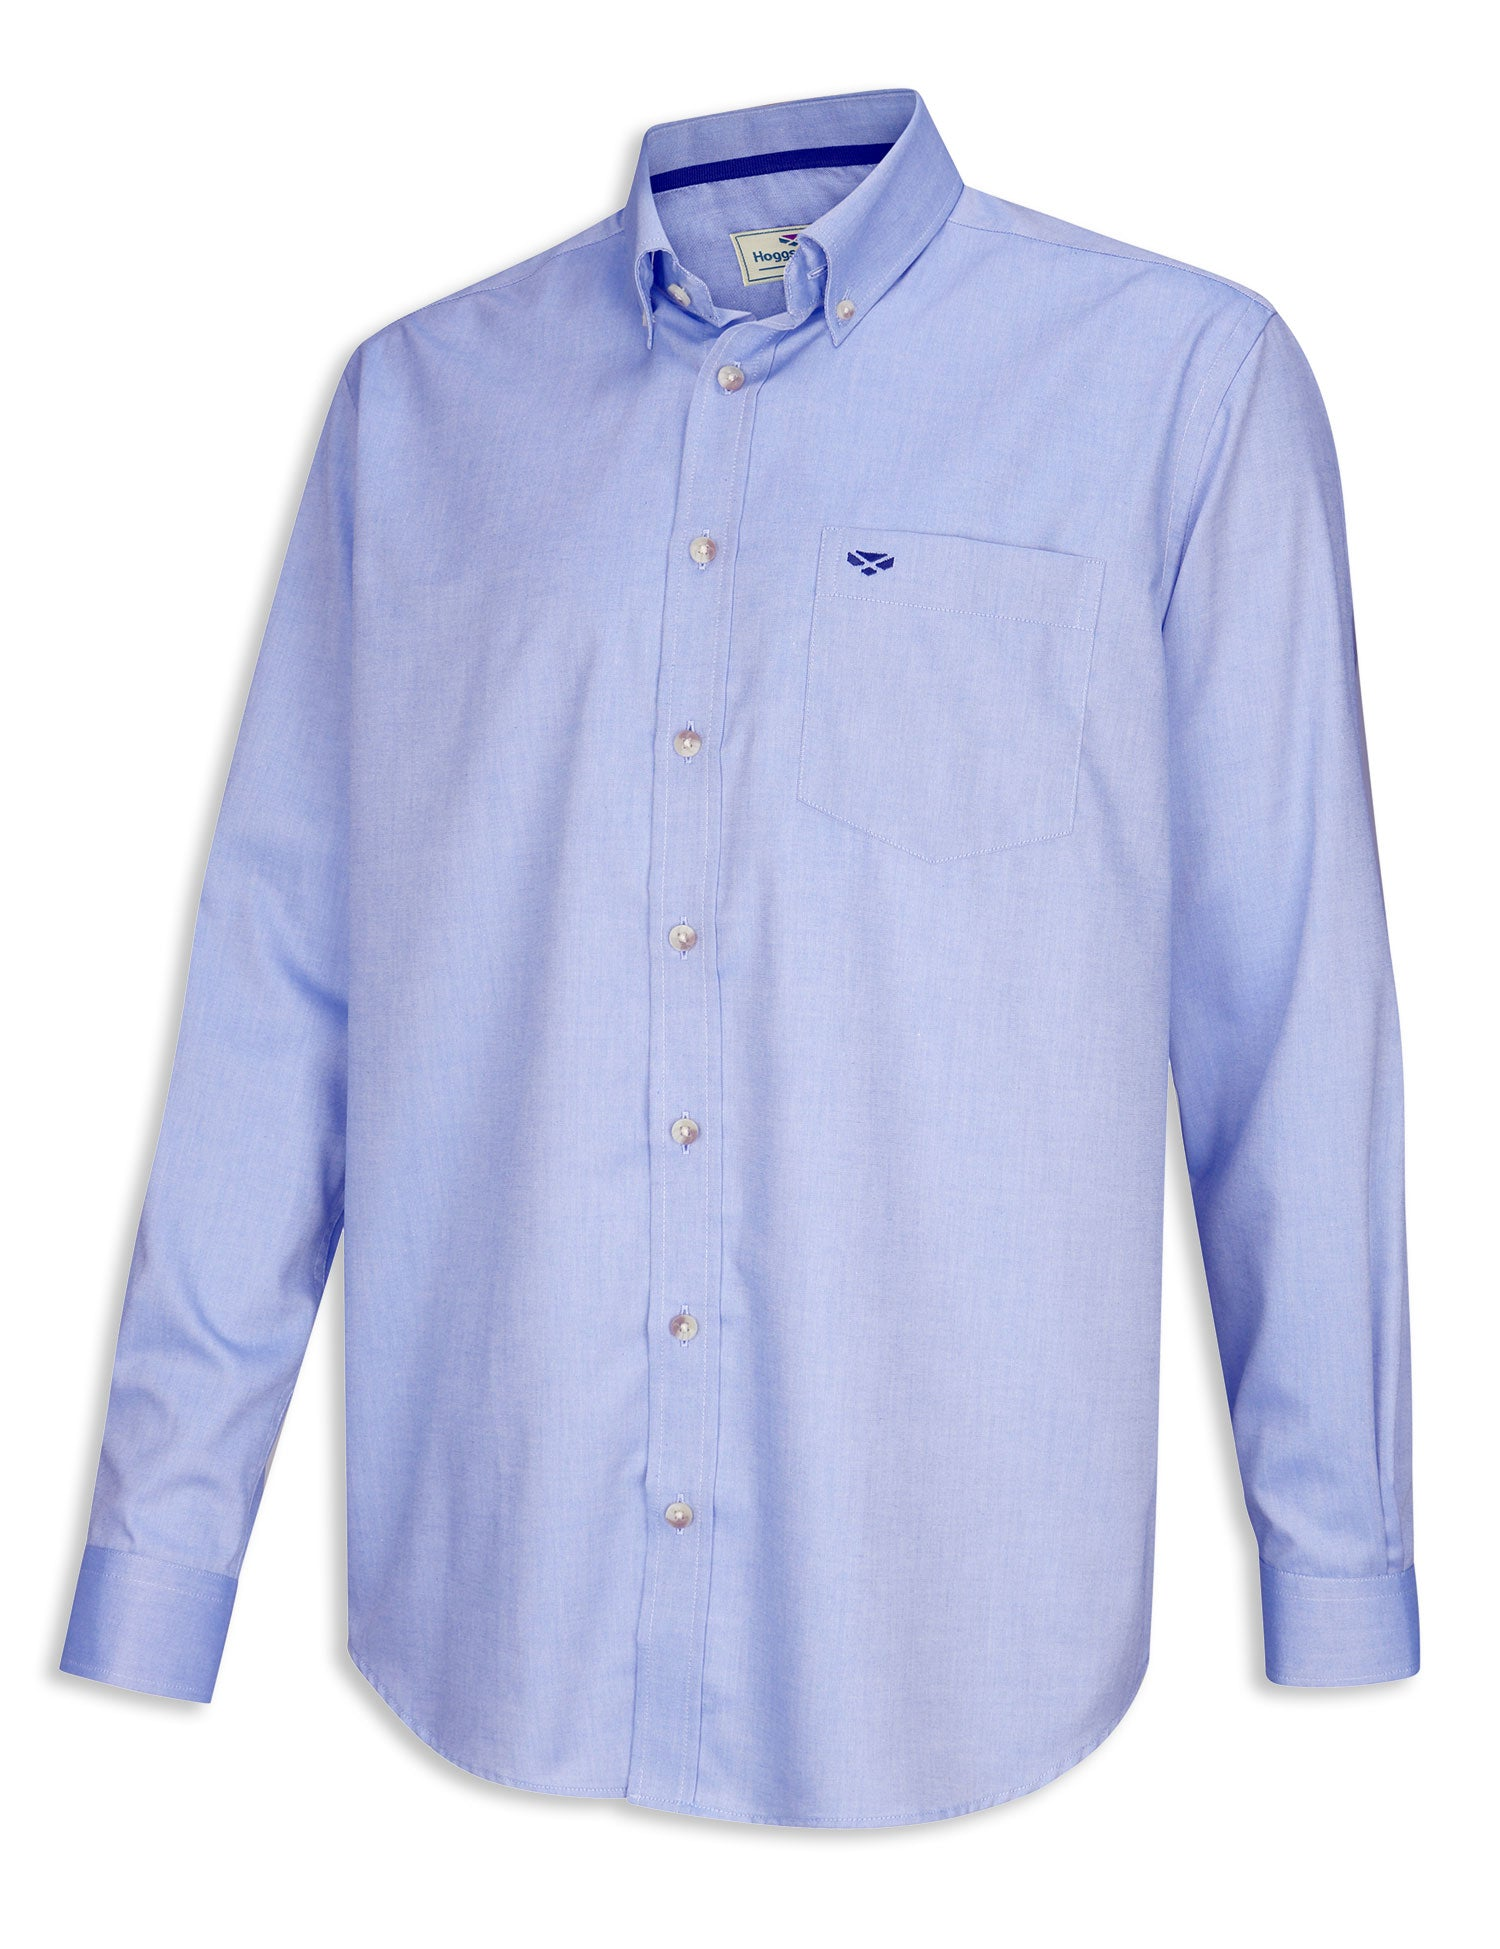 Hoggs Dunedin Plain Oxford Shirt | Blue